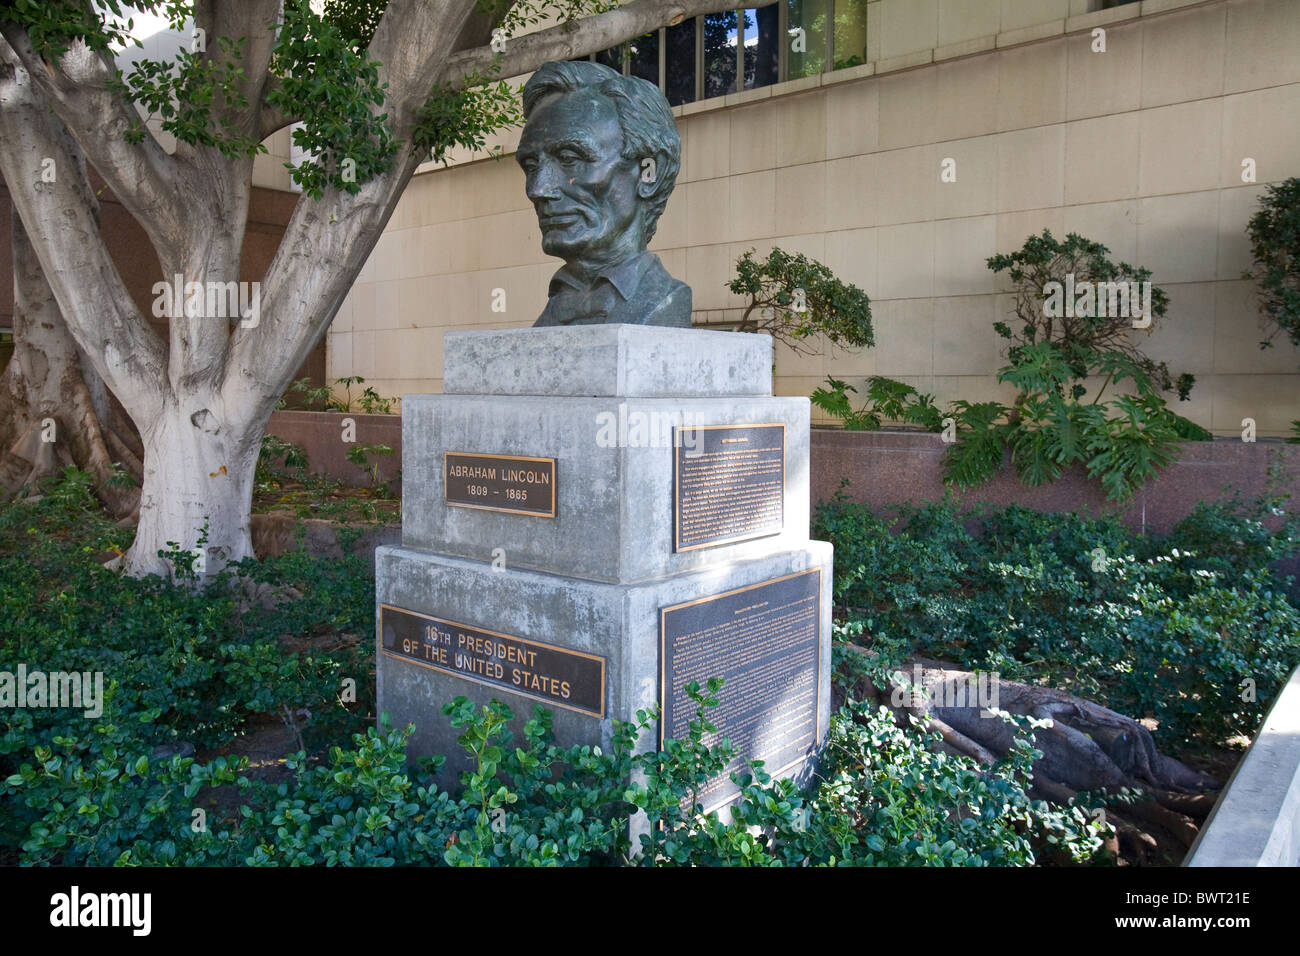 Abraham Lincoln sculpture, 1961, by Robert Merrill Gage, Grand Avenue, Downtown Los Angeles, California, USA Stock Photo